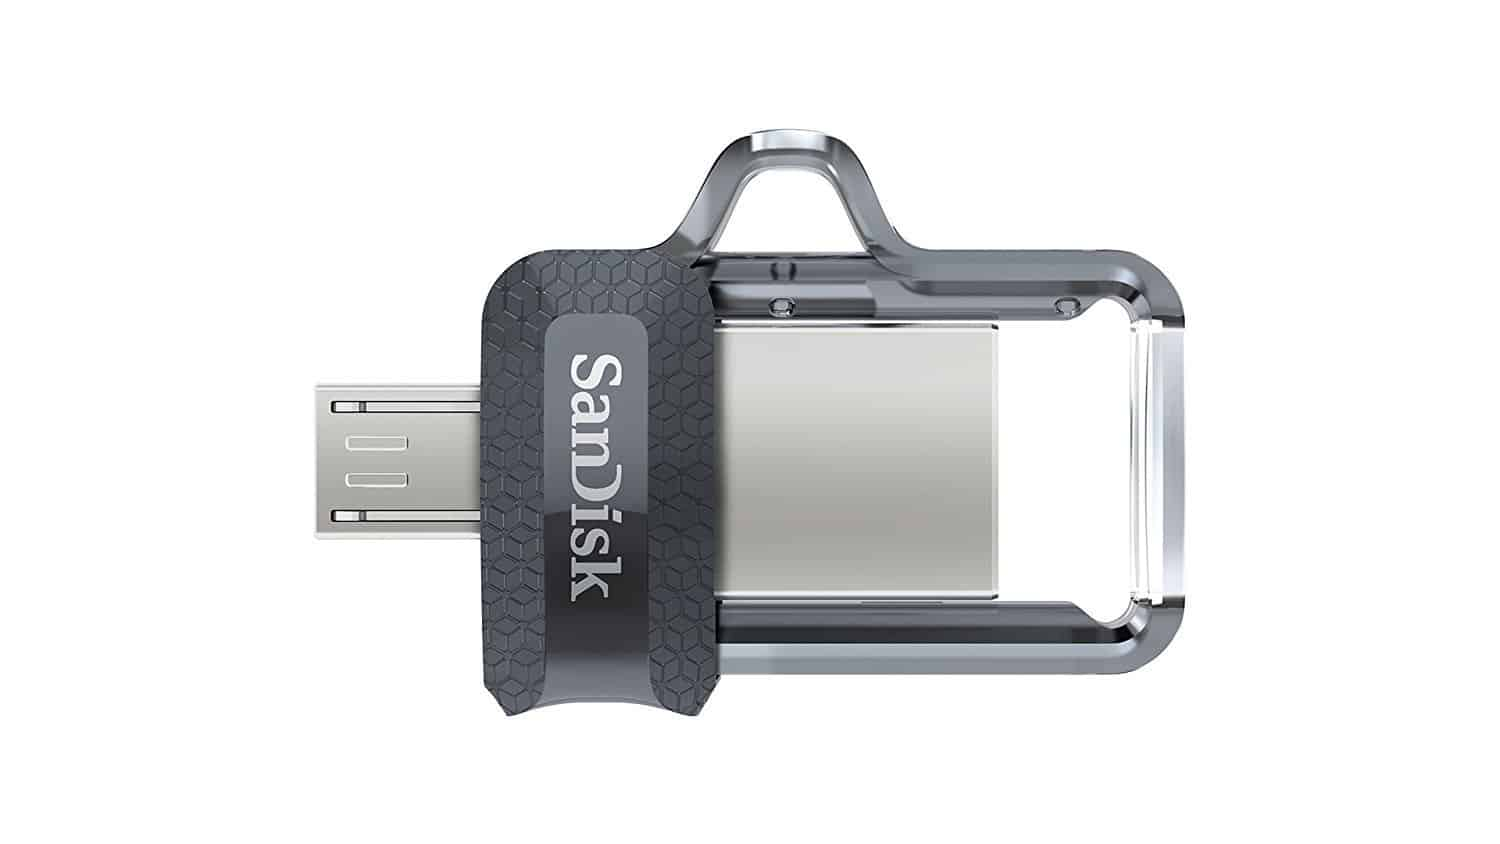 Sandisk OTG 3.0 Pendrive 2 in one pendrive for mobile and pc